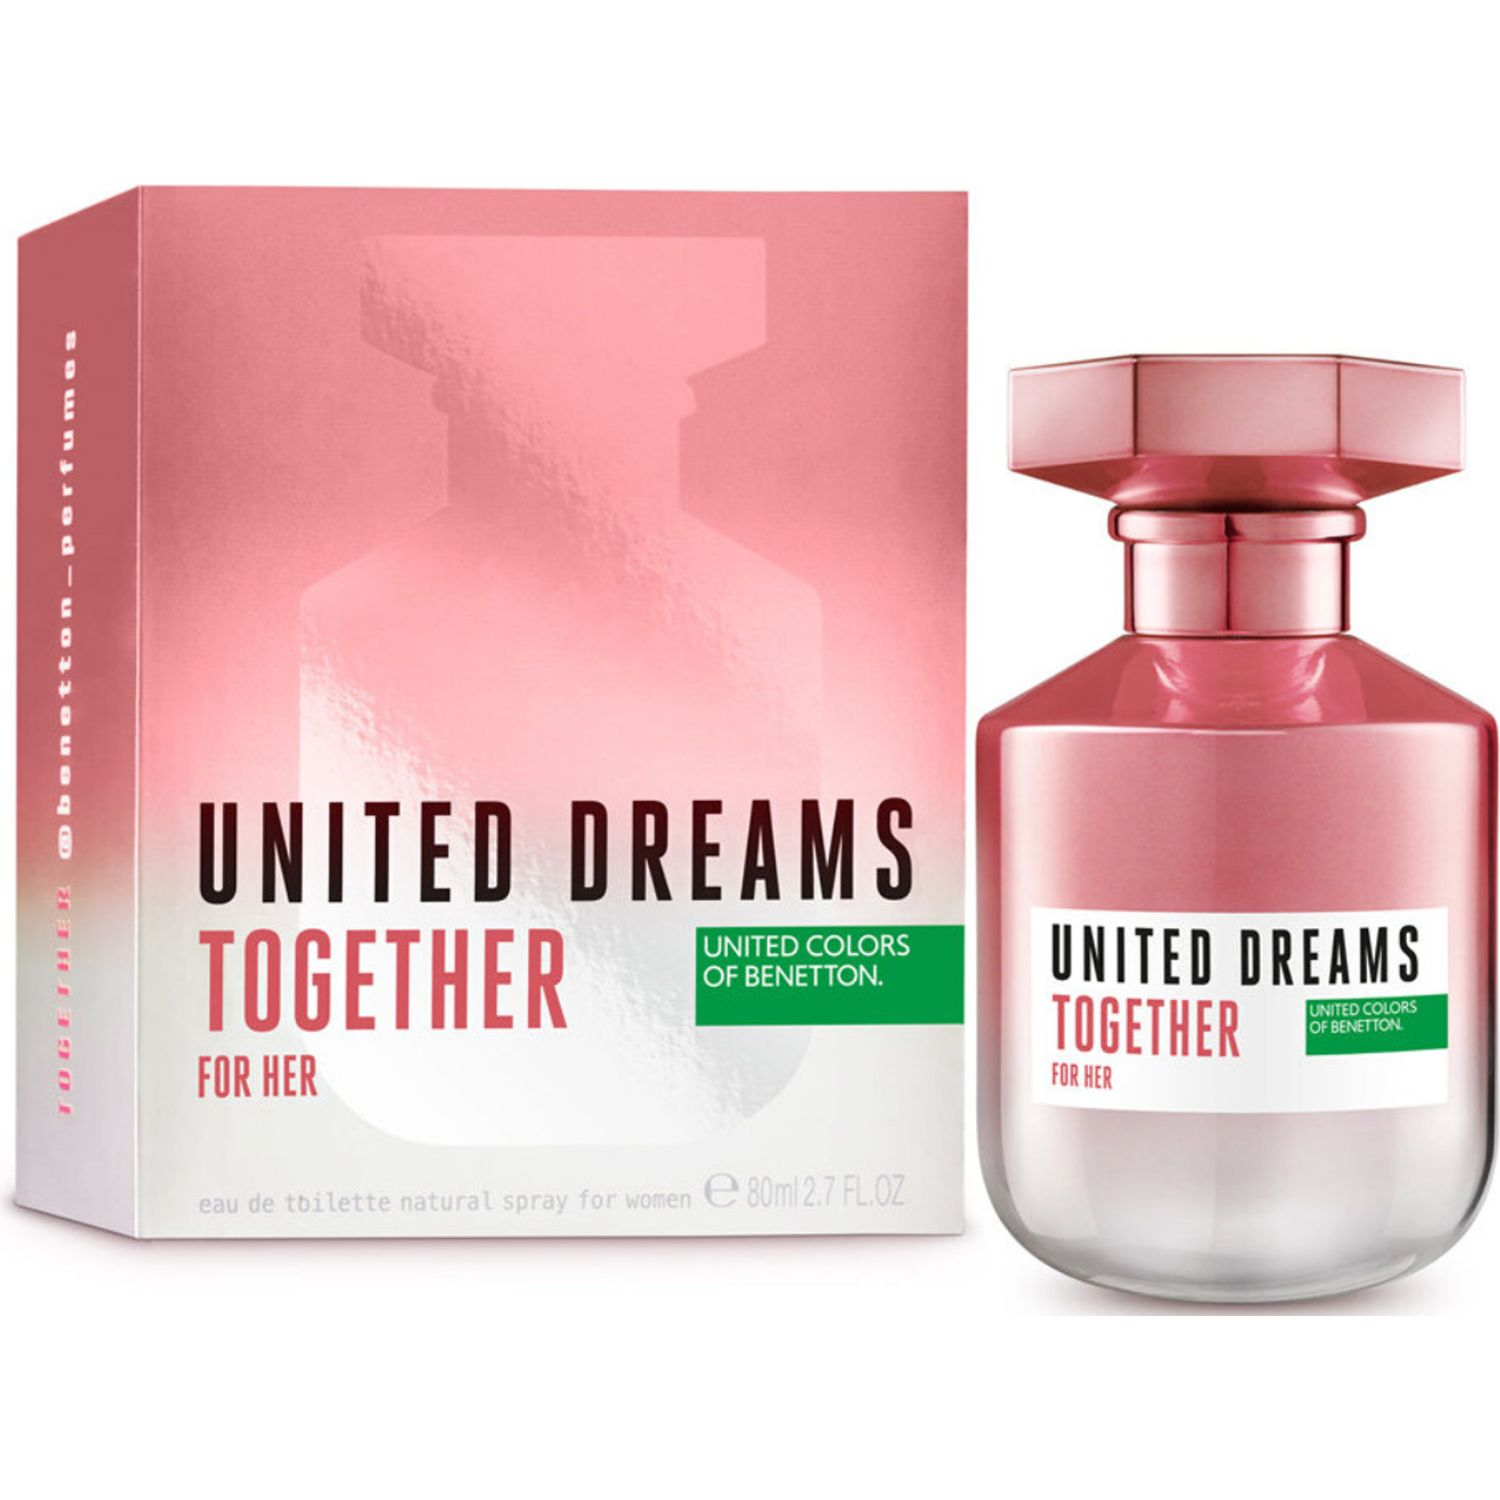 Benetton BNT UD TOGETHER HER HER 50ML VP Varios Colonia